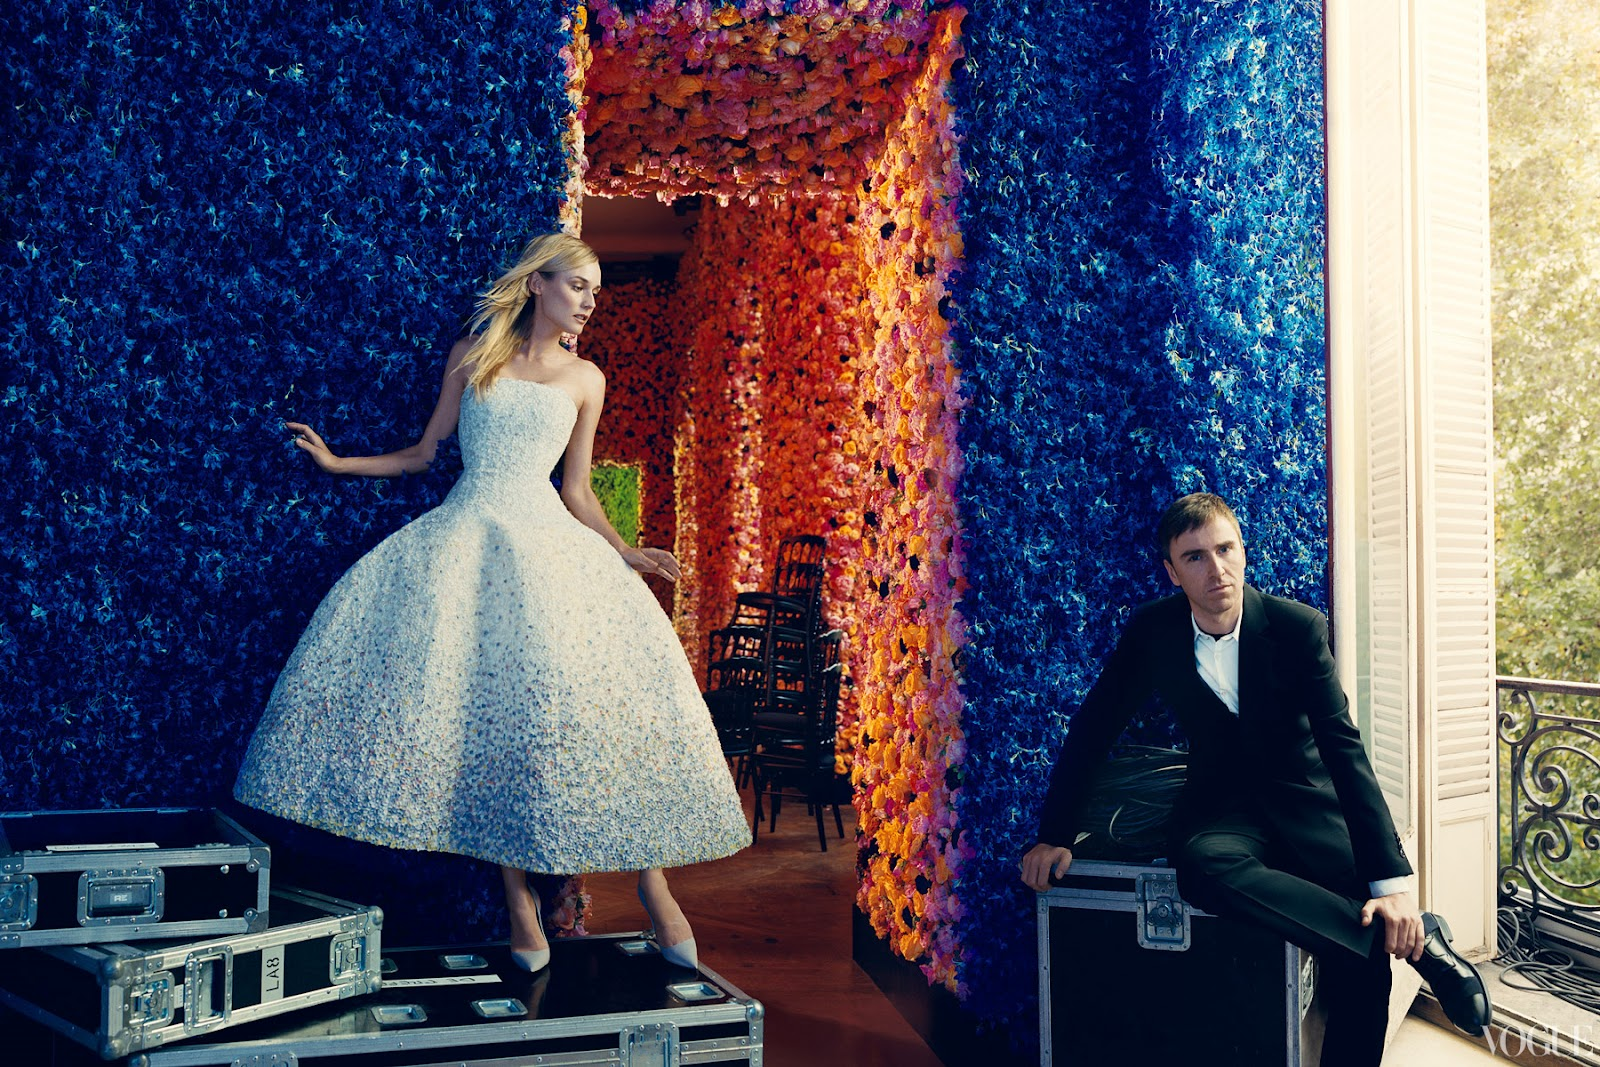 dior-and-i-documentary-film-2015-habituallychic-002